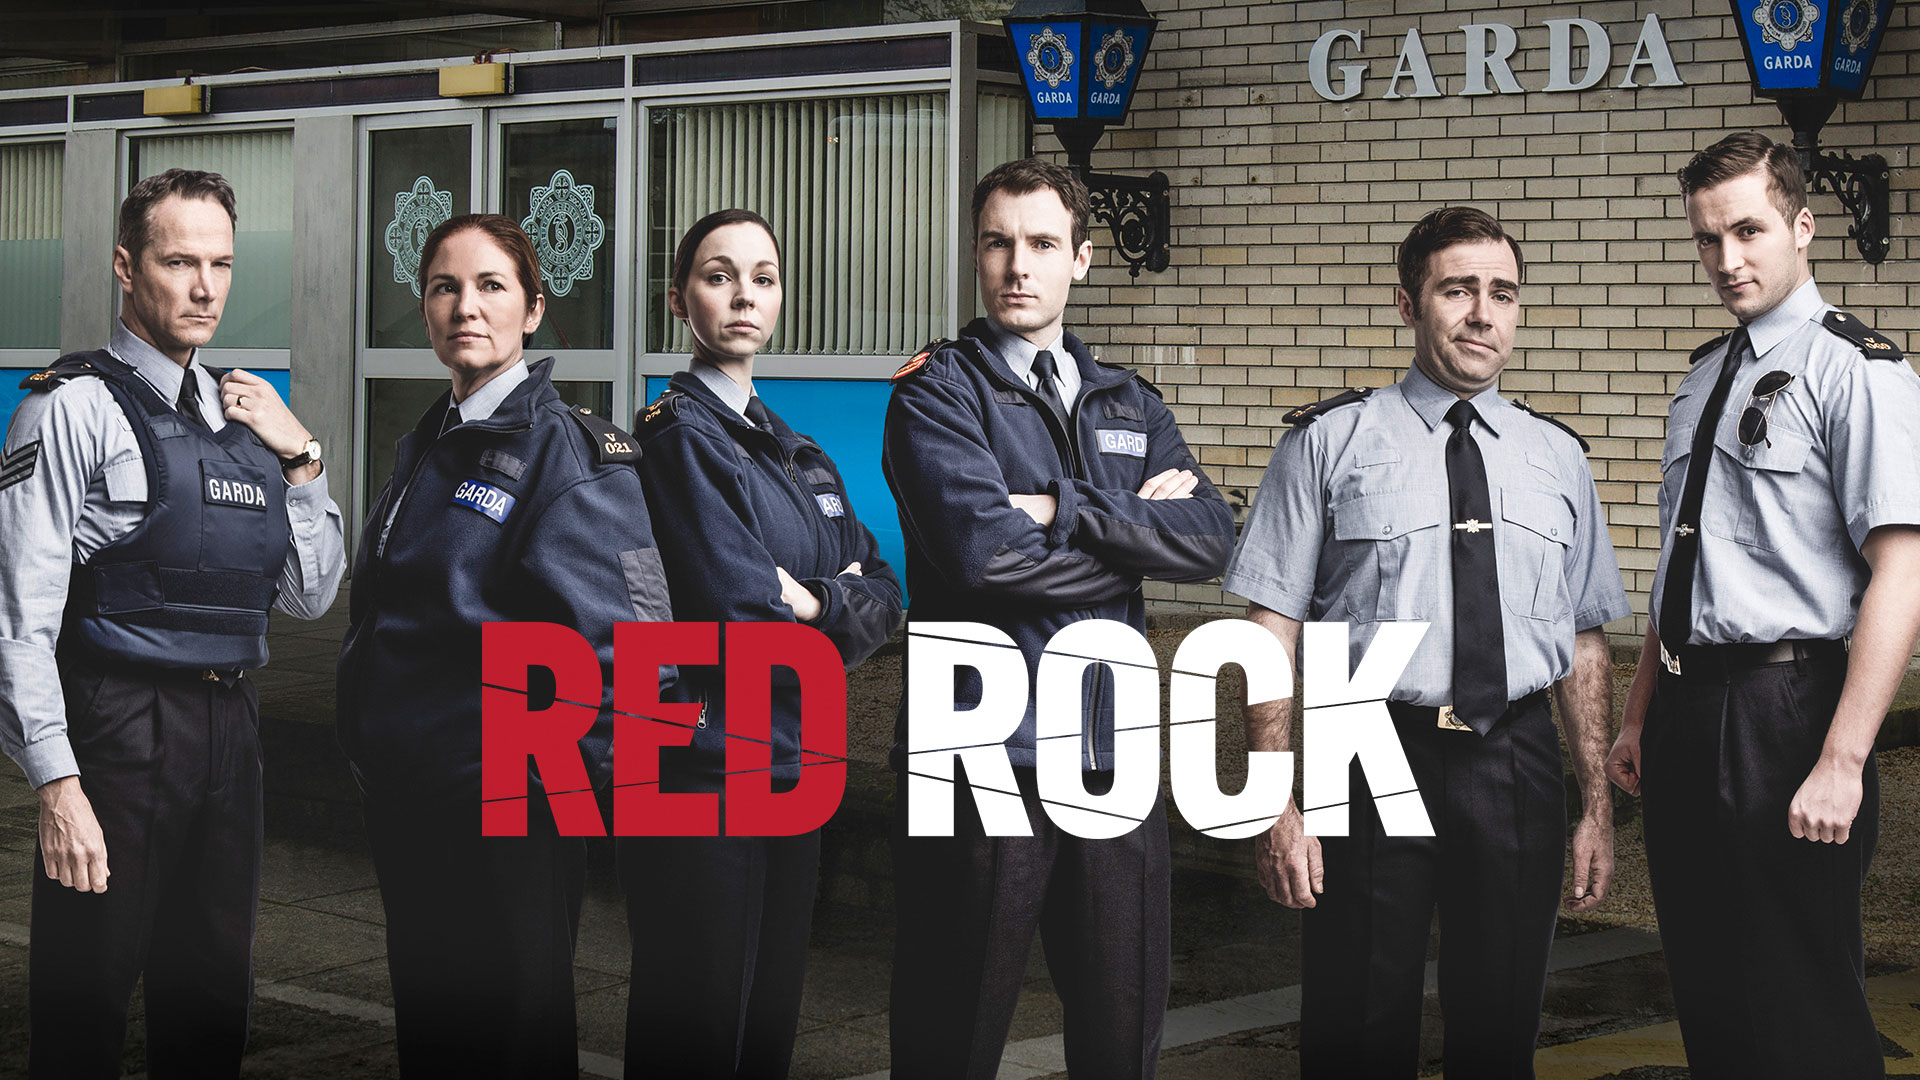 Red Rock - Season 1